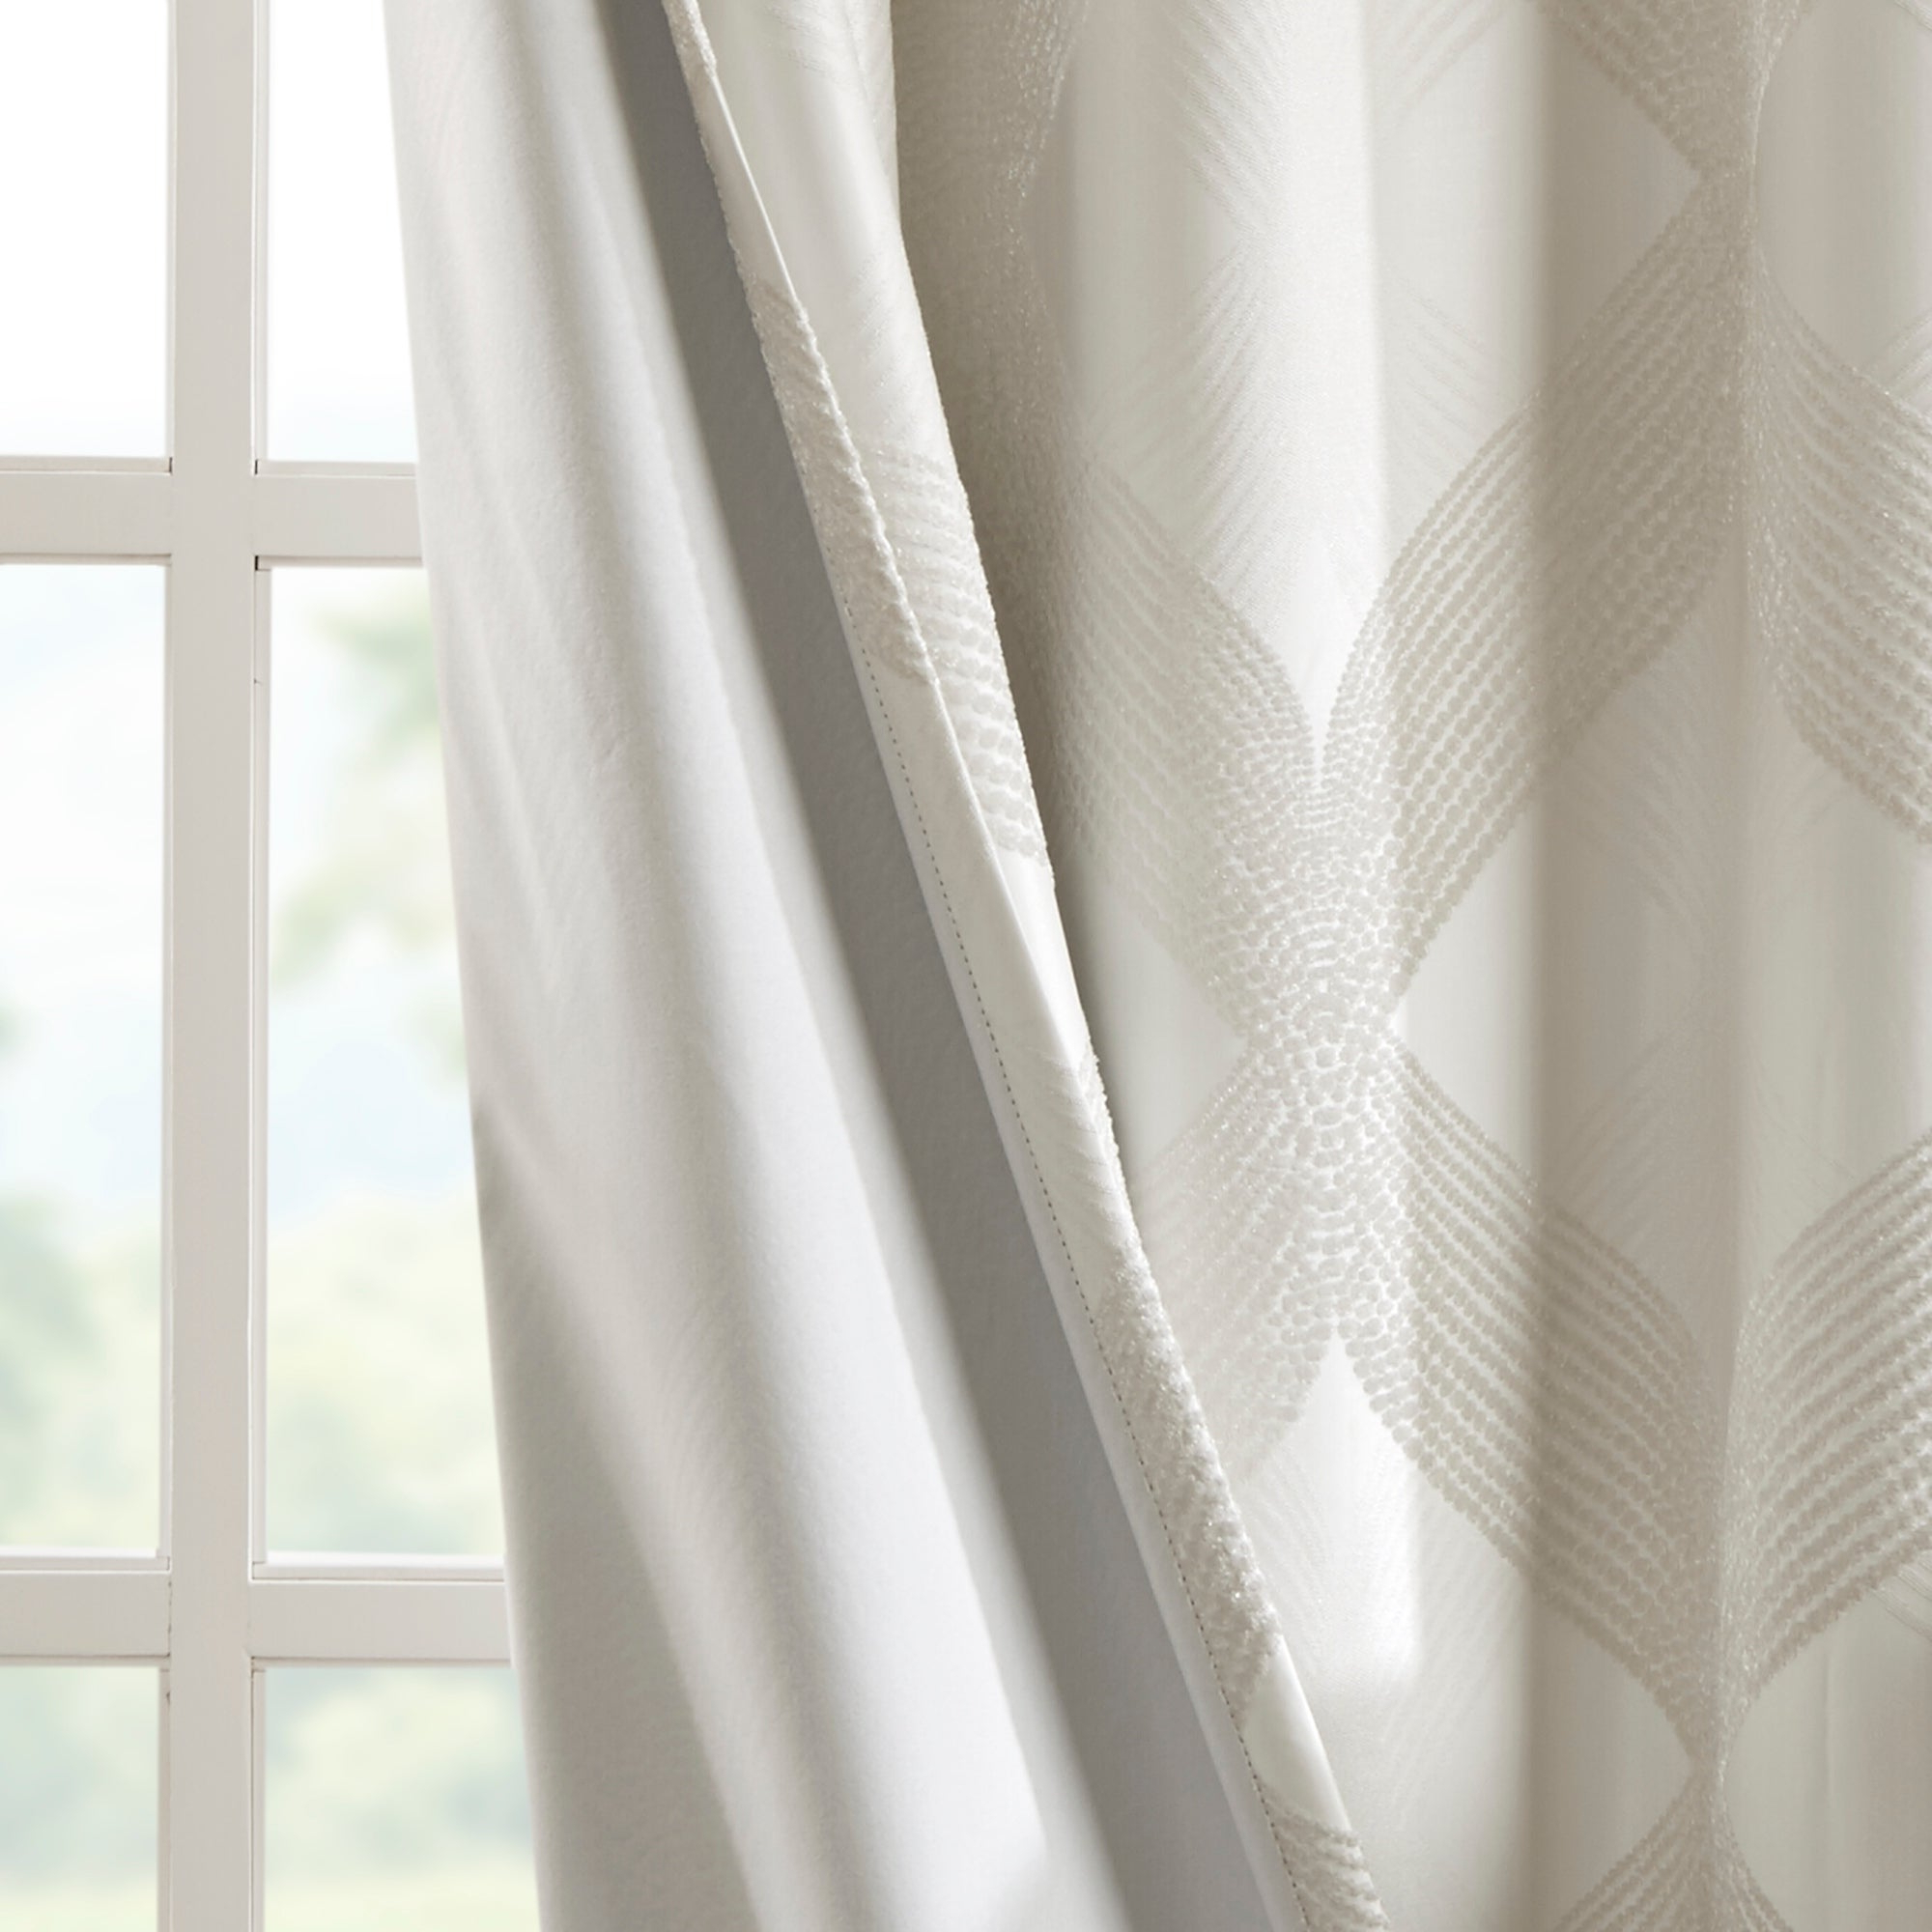 Well Known Sunsmart Abel Ogee Knitted Jacquard Total Blackout Curtain Panel Intended For Sunsmart Abel Ogee Knitted Jacquard Total Blackout Curtain Panels (View 11 of 20)